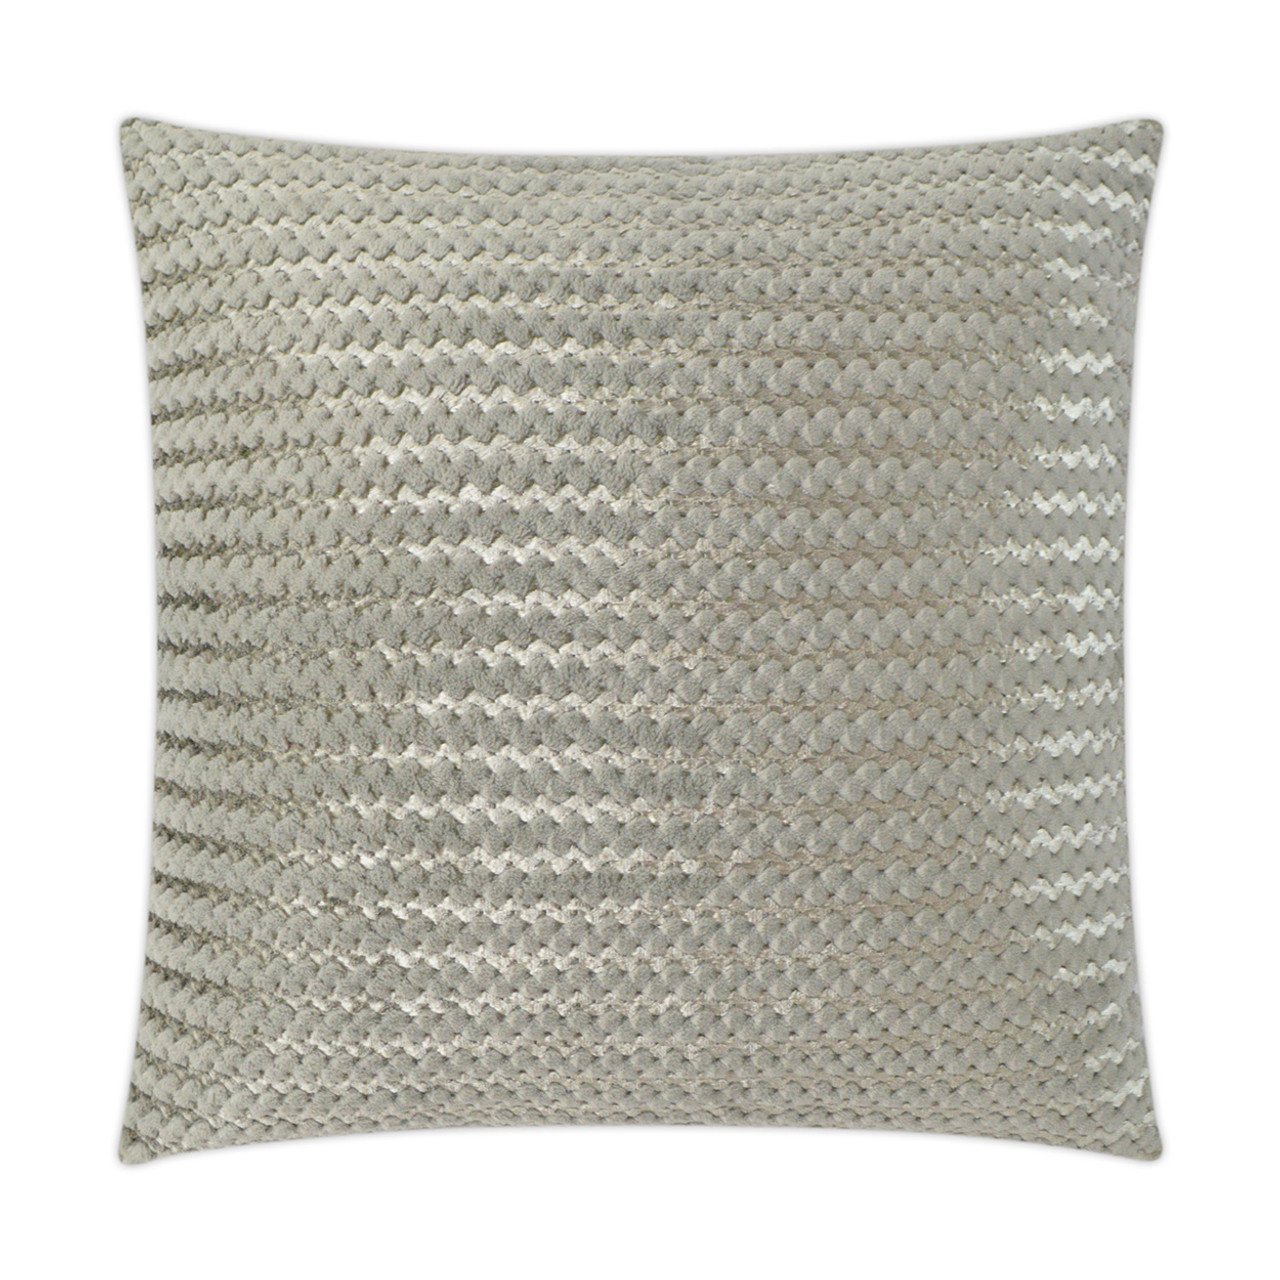 Gene Faux Fur Throw Pillow - Grey